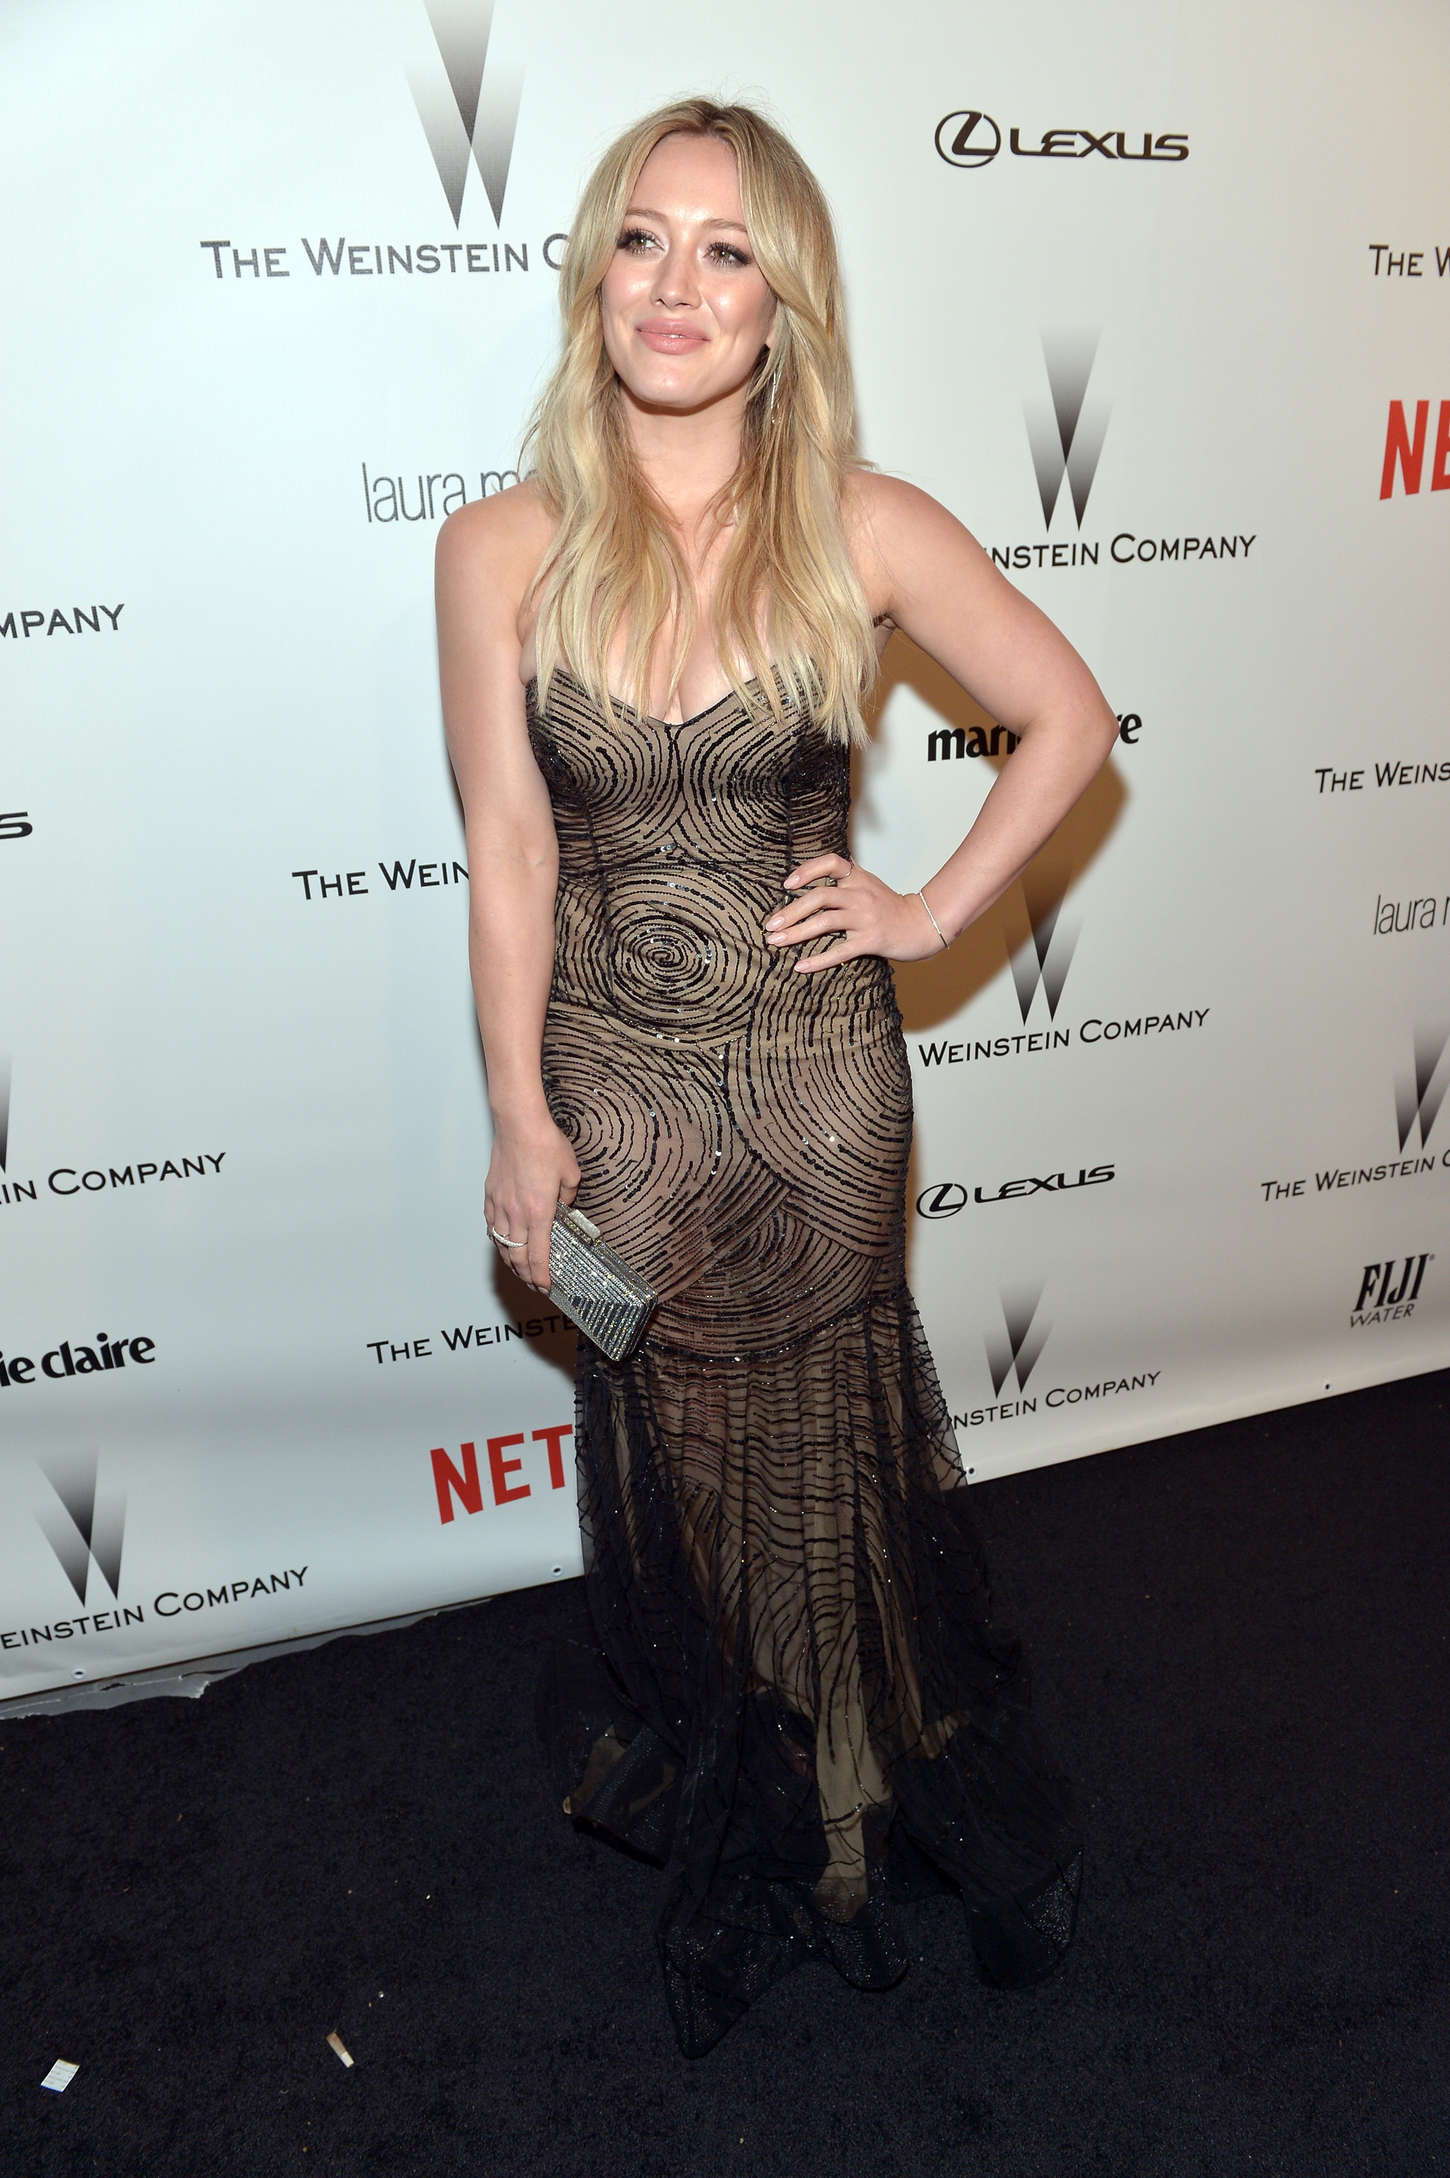 Hilary Duff 2015 : Hilary Duff: 2015 The Weinstein Company and Netflixs Golden Globes Party -06